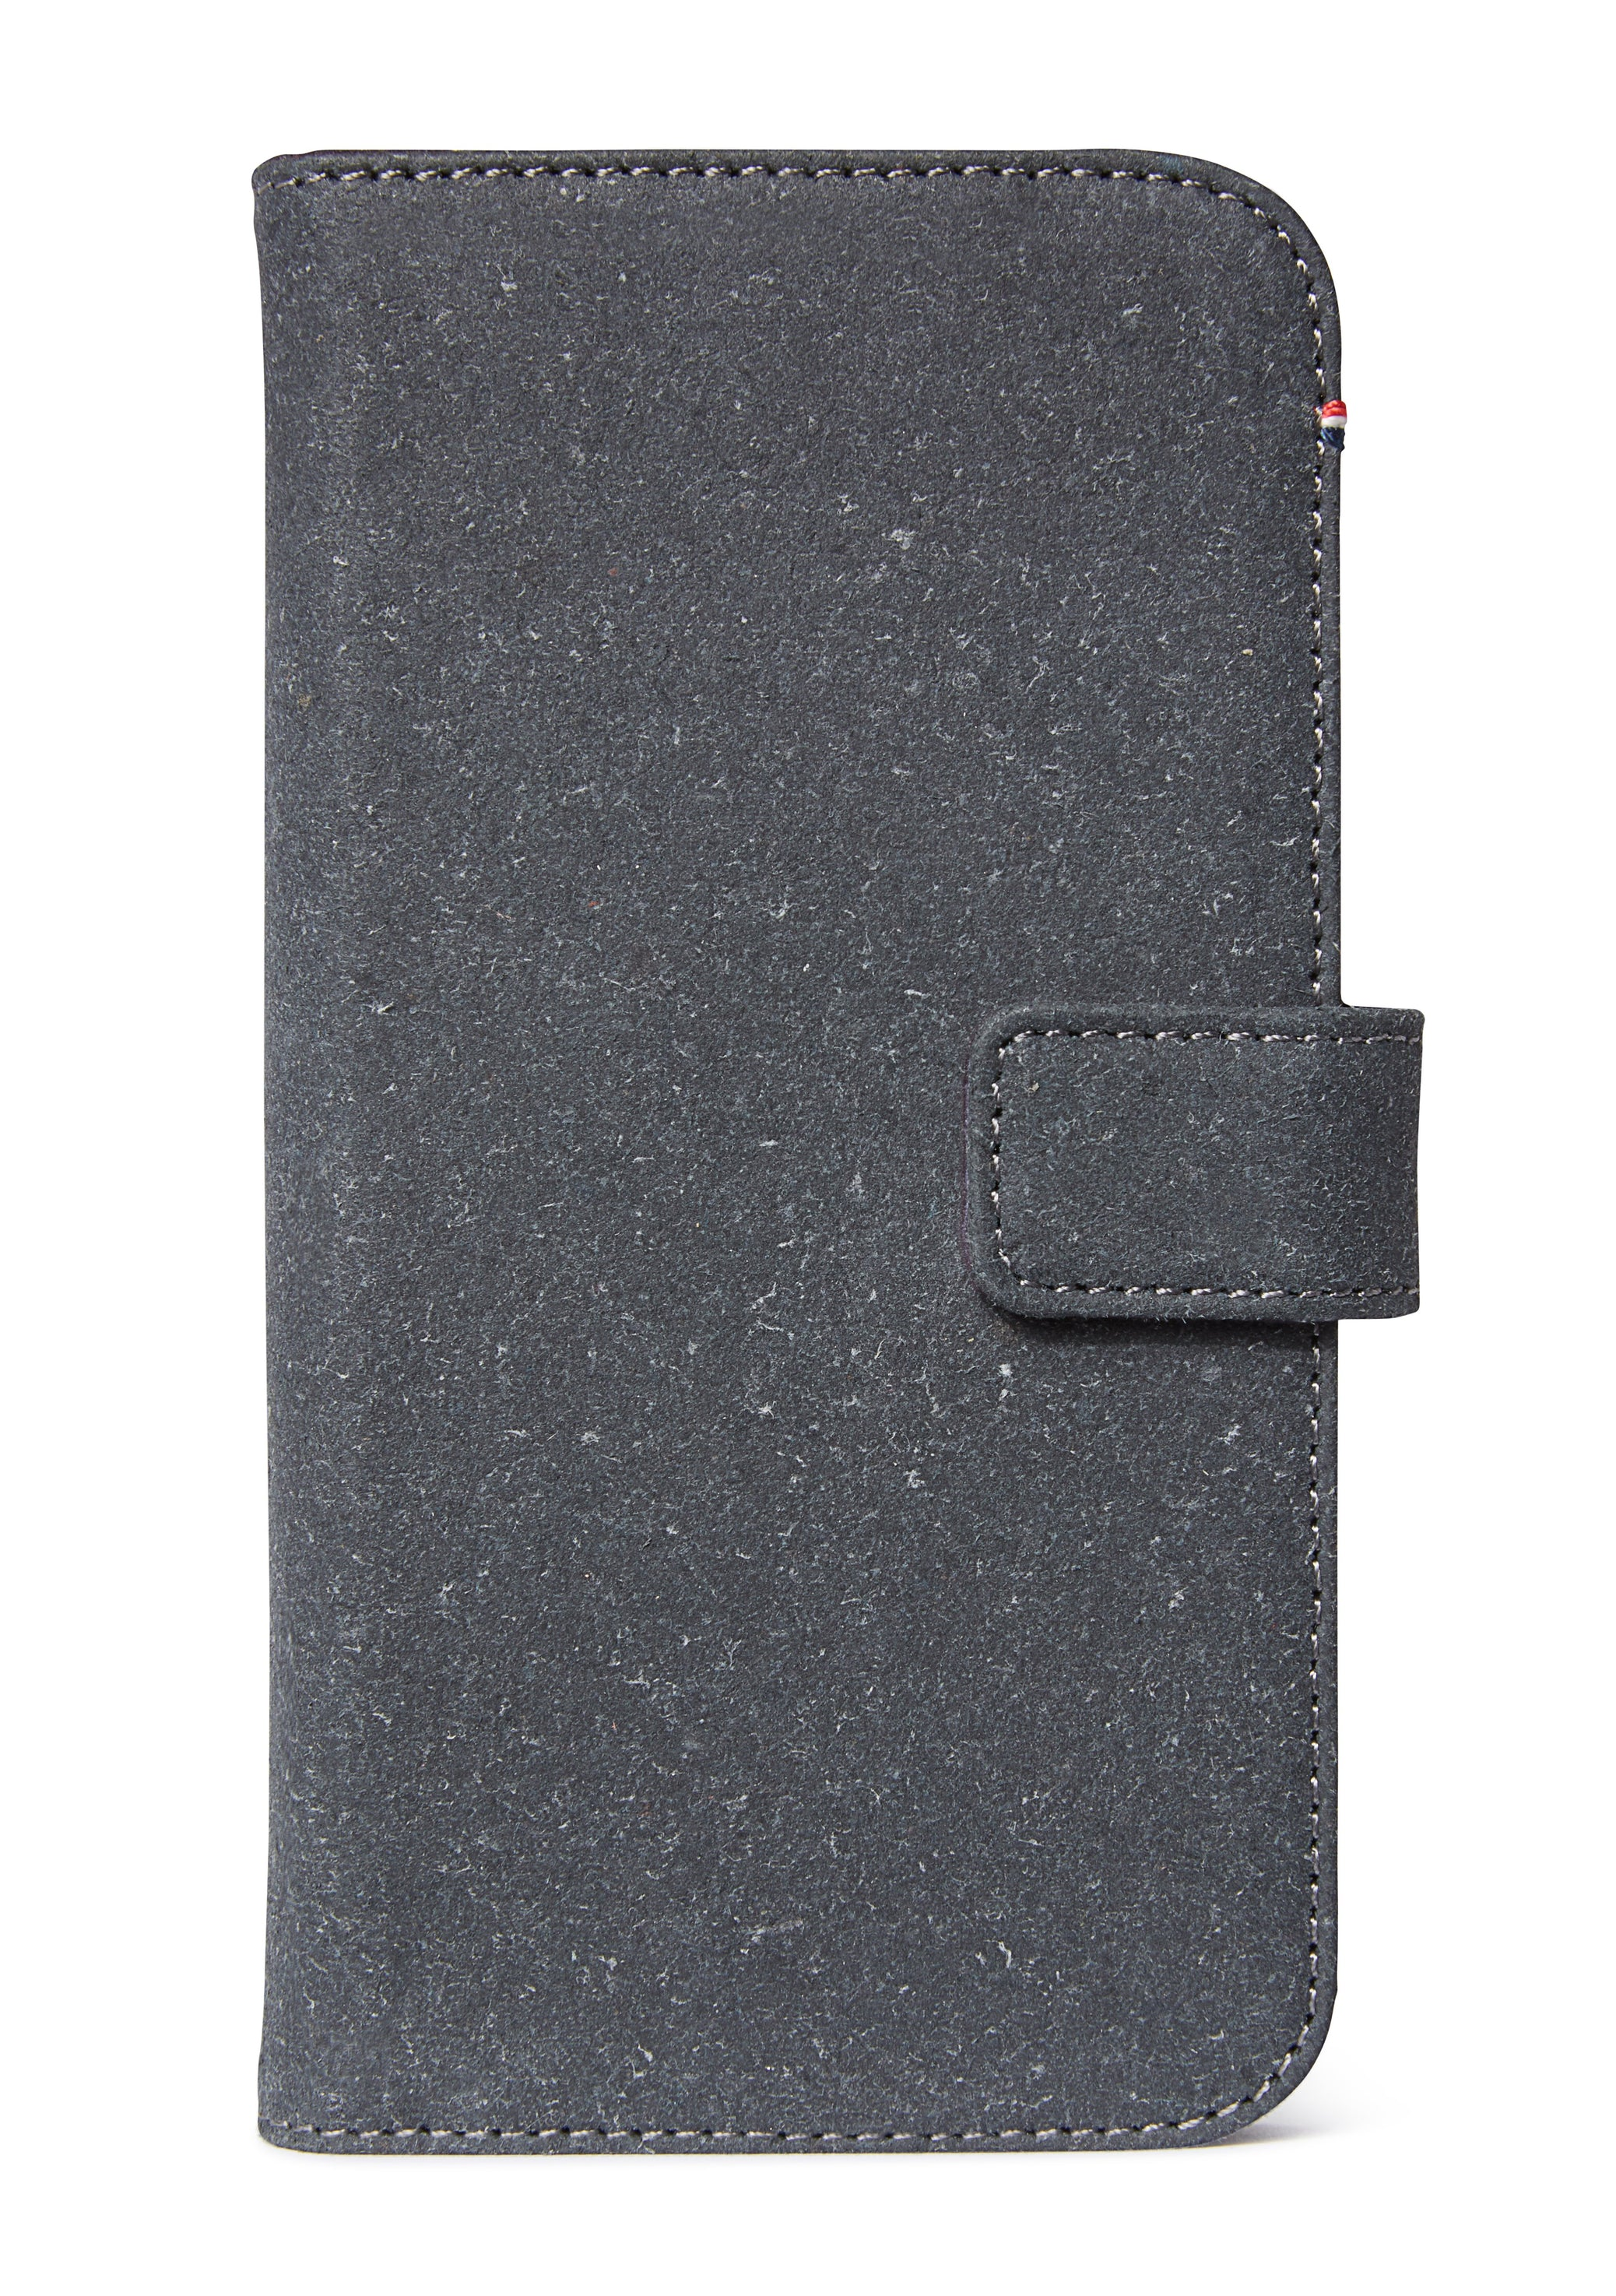 Detachable Wallet Recyc Anthracite - iPhone 11 Pro Max